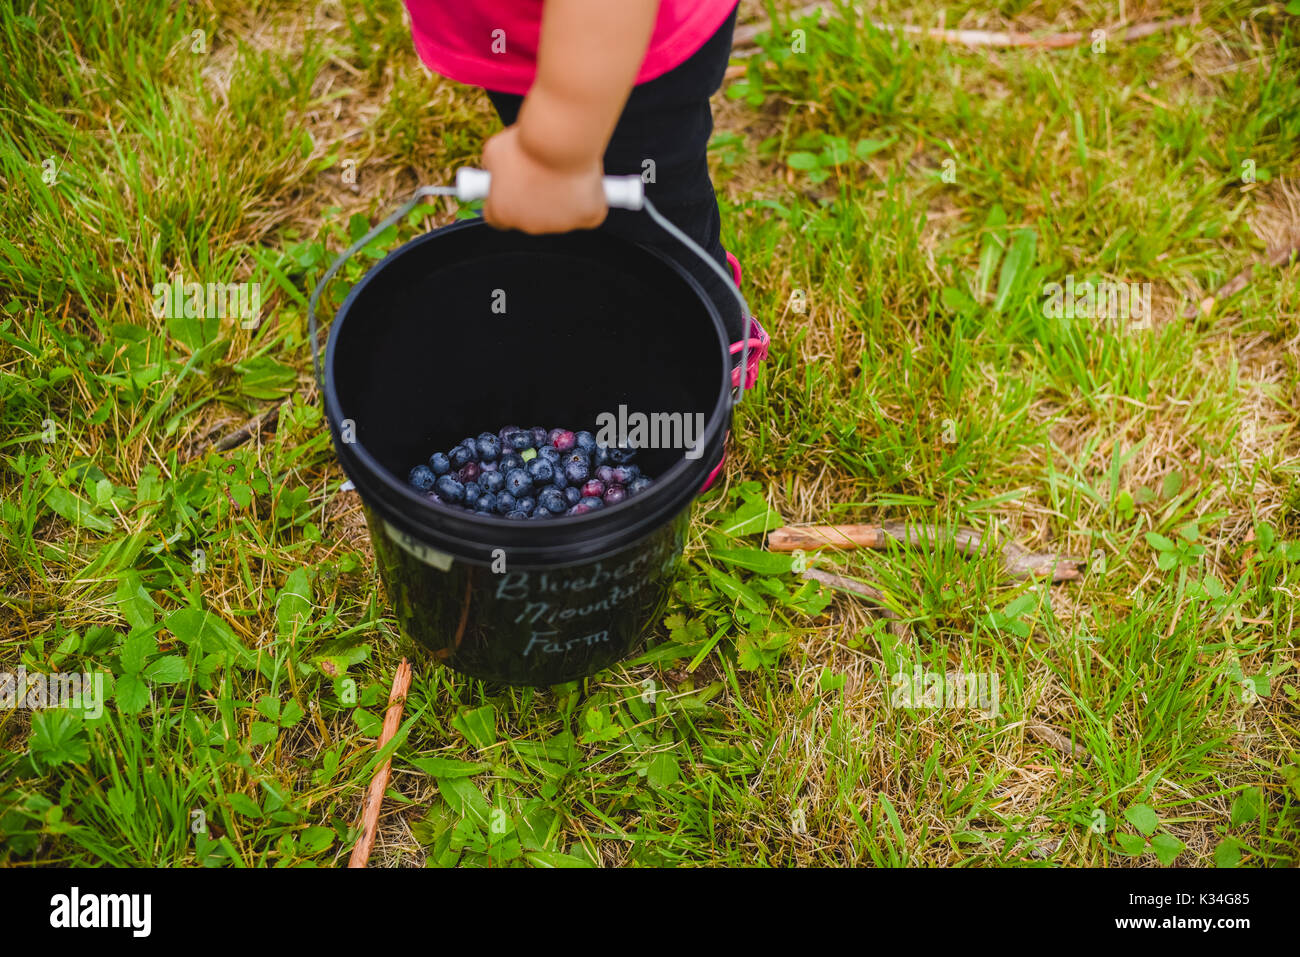 A small child holding a bucket full of blueberries - Stock Image